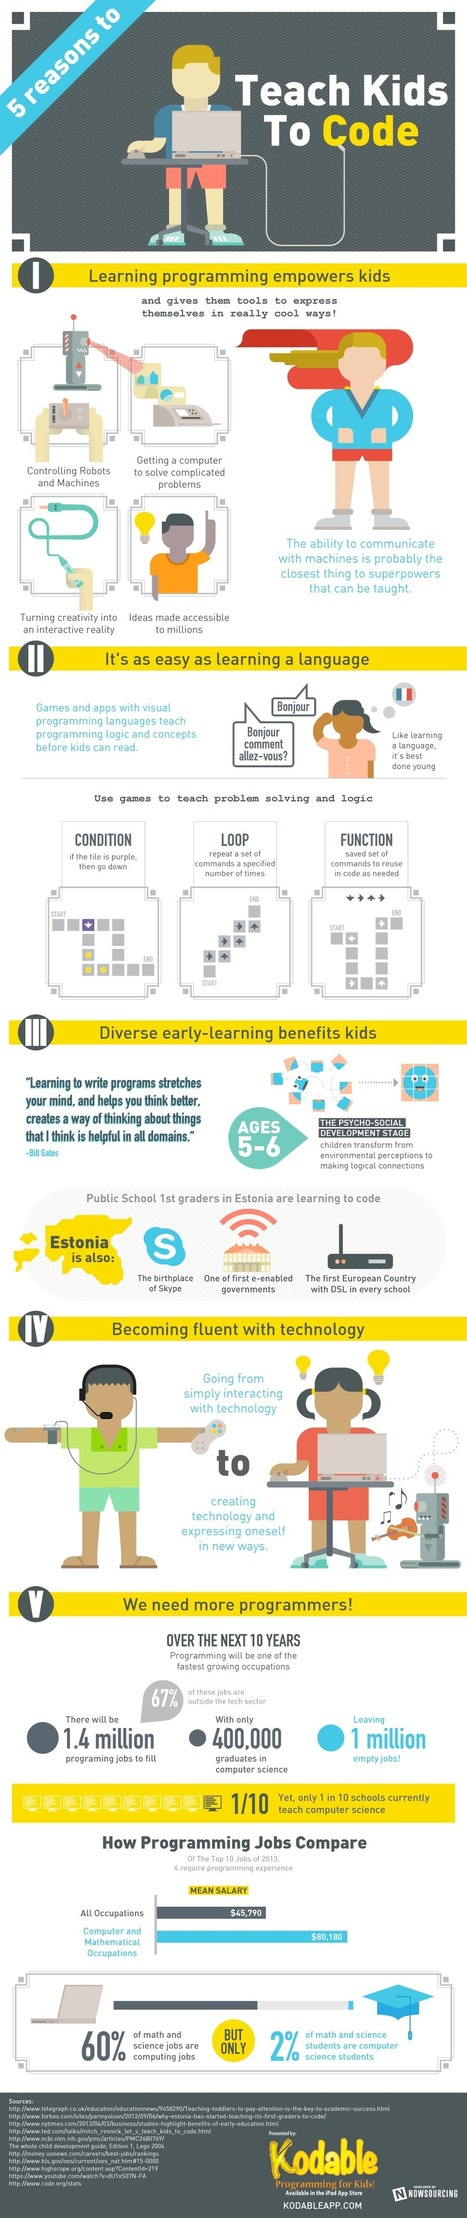 Five Reasons Why You Should Teach Kids to Code [Infographic] - Business 2 Community | Tech Teens | Scoop.it